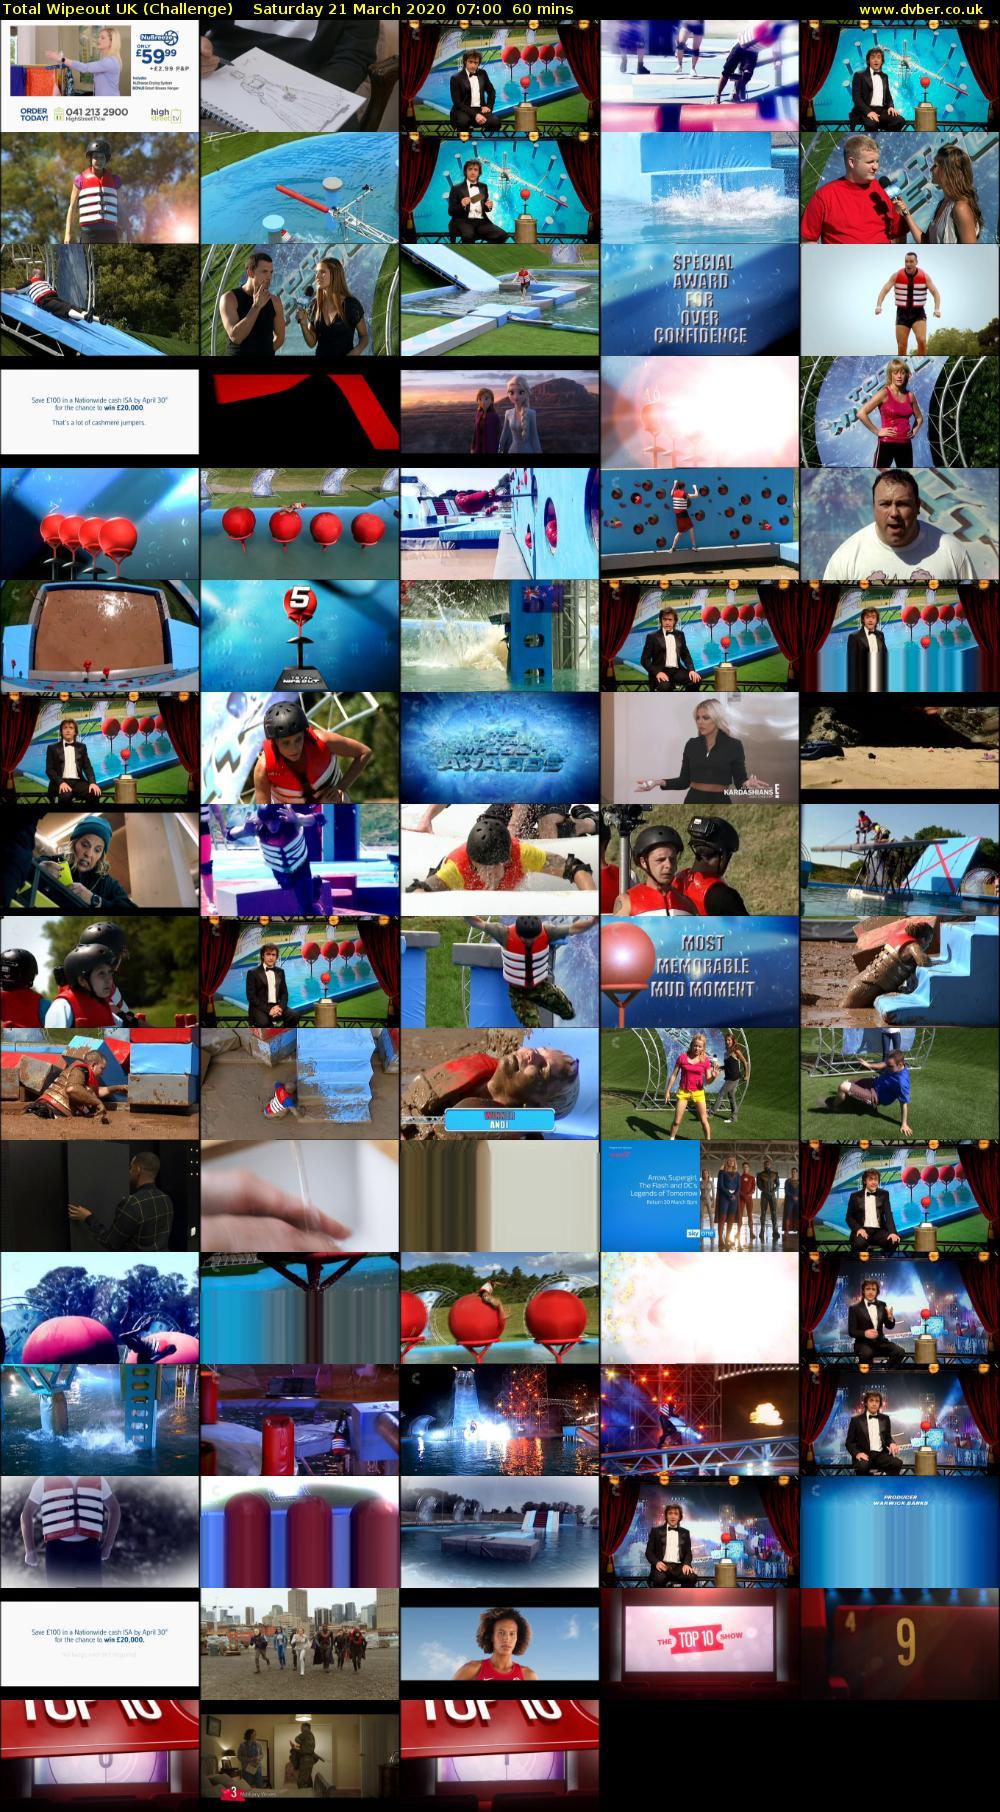 Total Wipeout UK (Challenge) Saturday 21 March 2020 07:00 - 08:00